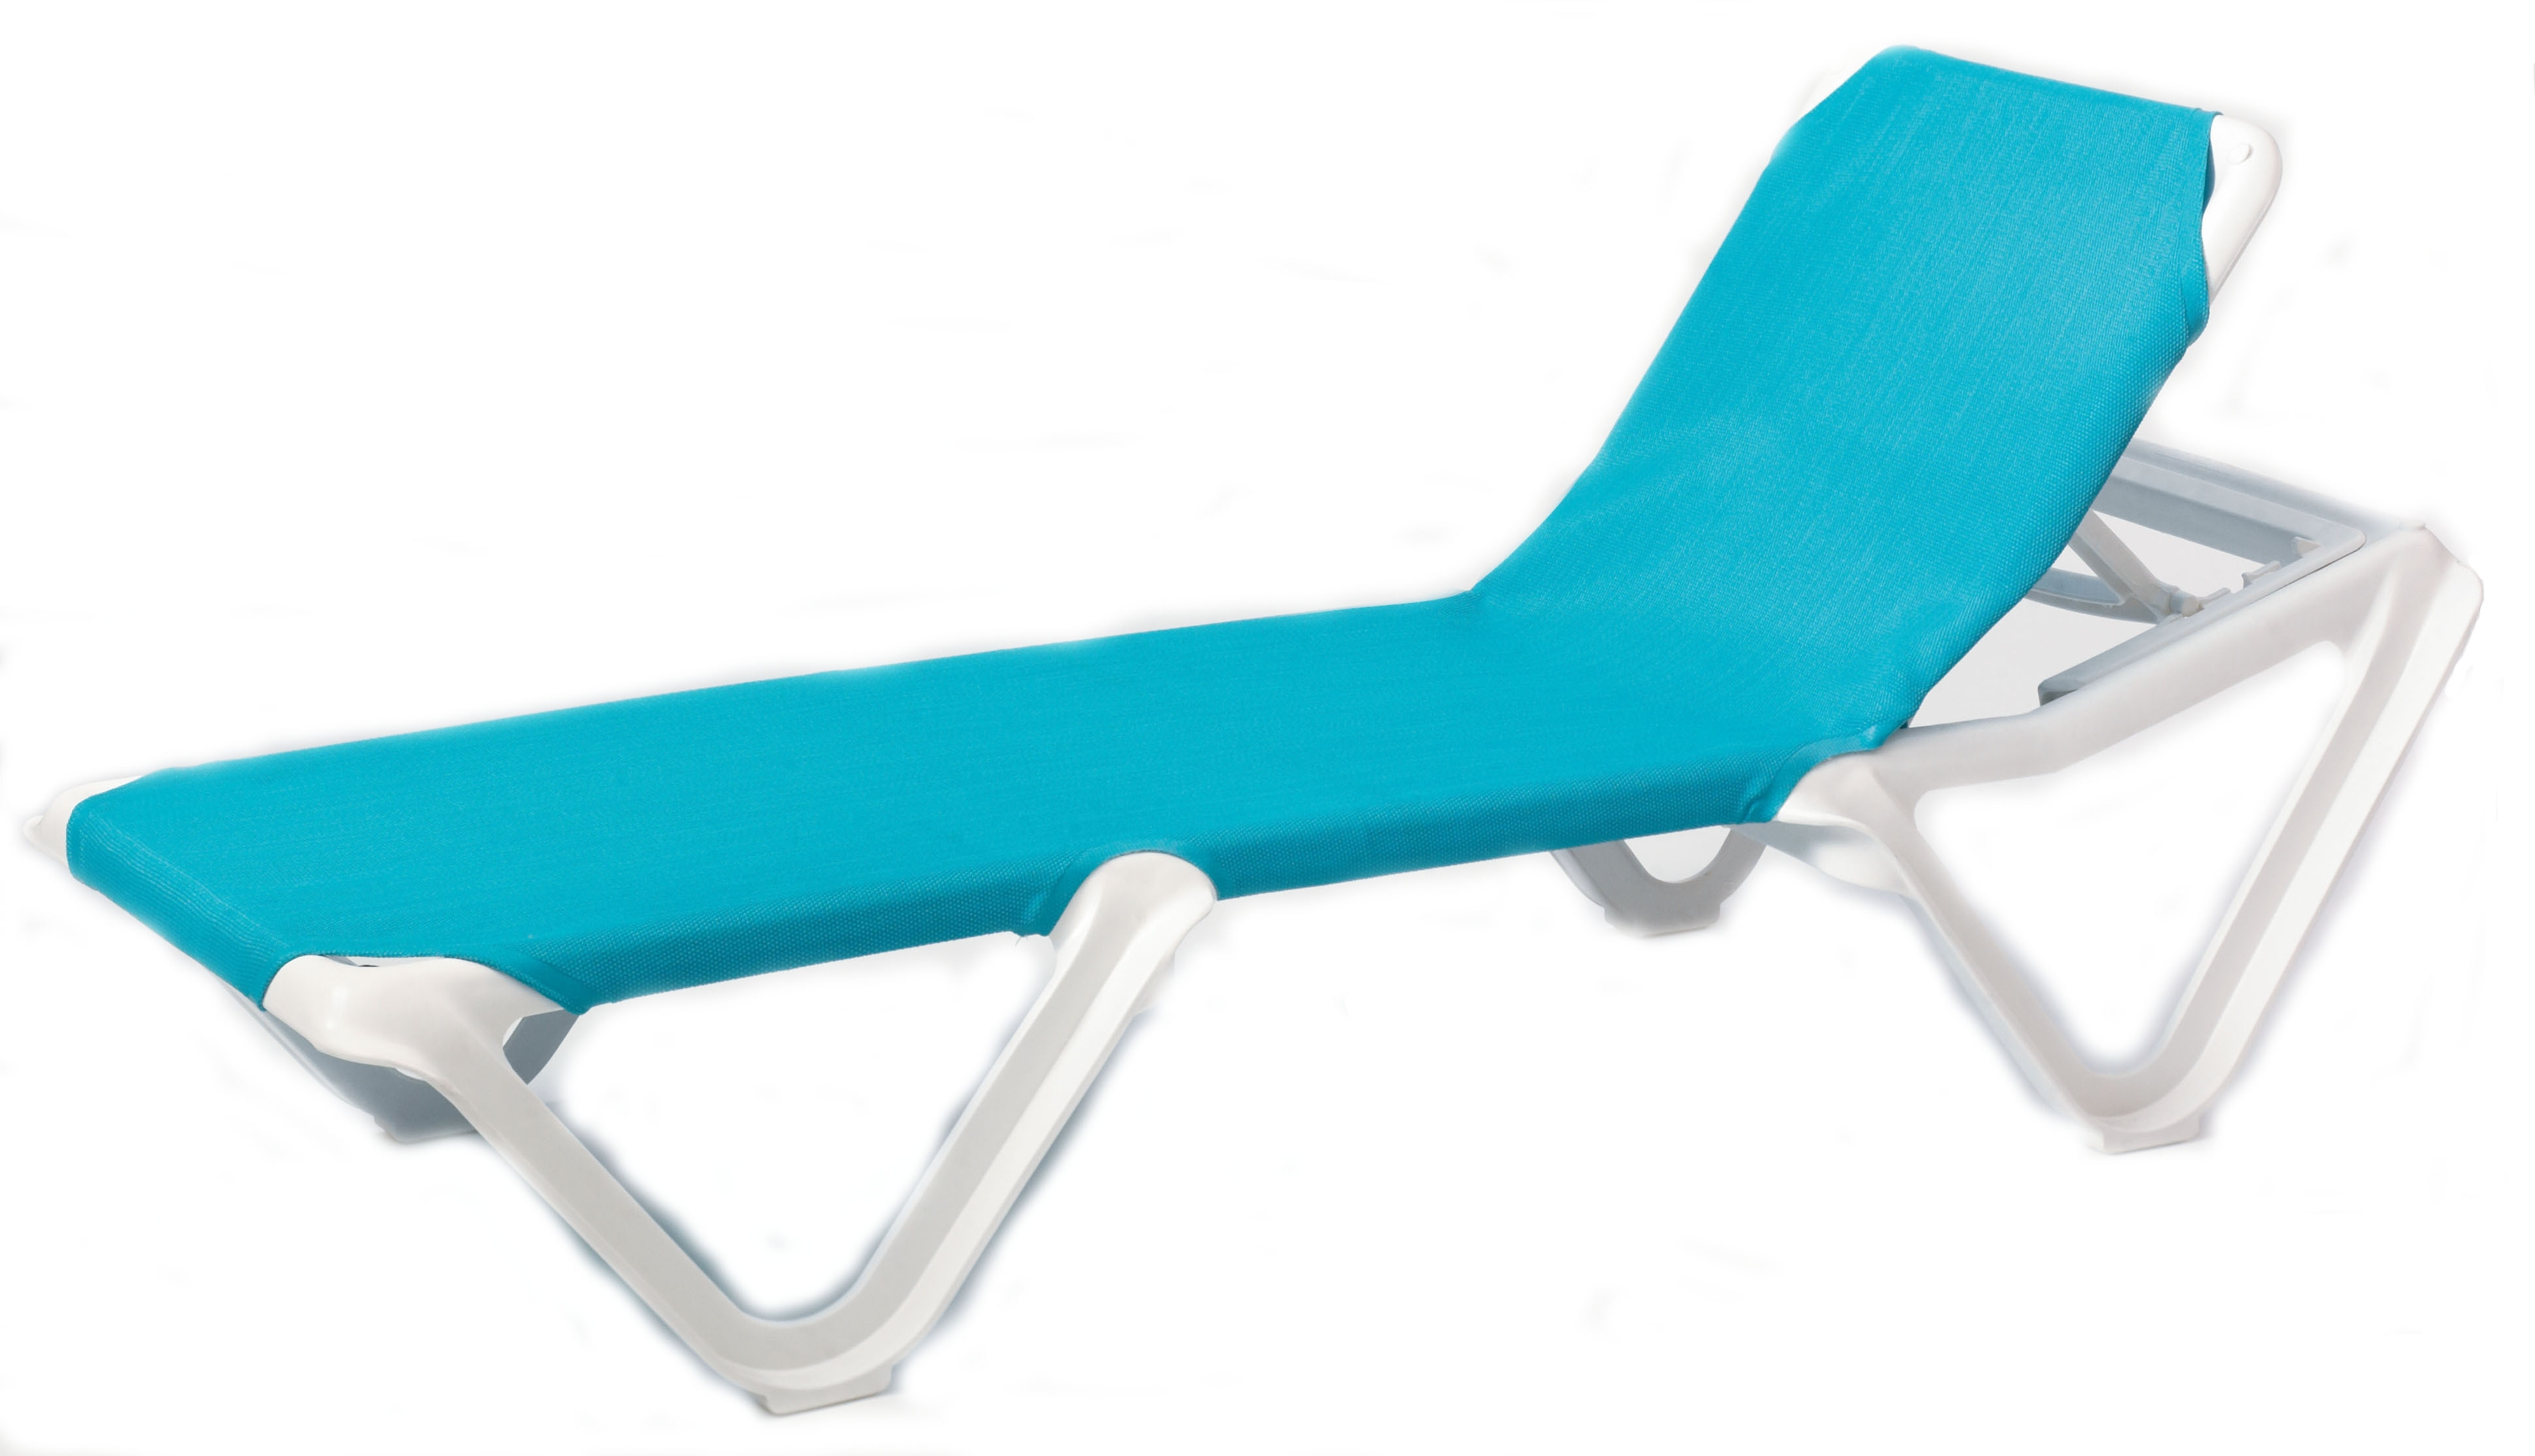 Chaise Lounge Chairs For Poolside Pertaining To Popular Pool Chairs Lounge Enjoy The Sunshine Well Through Pool Chaise (View 1 of 15)